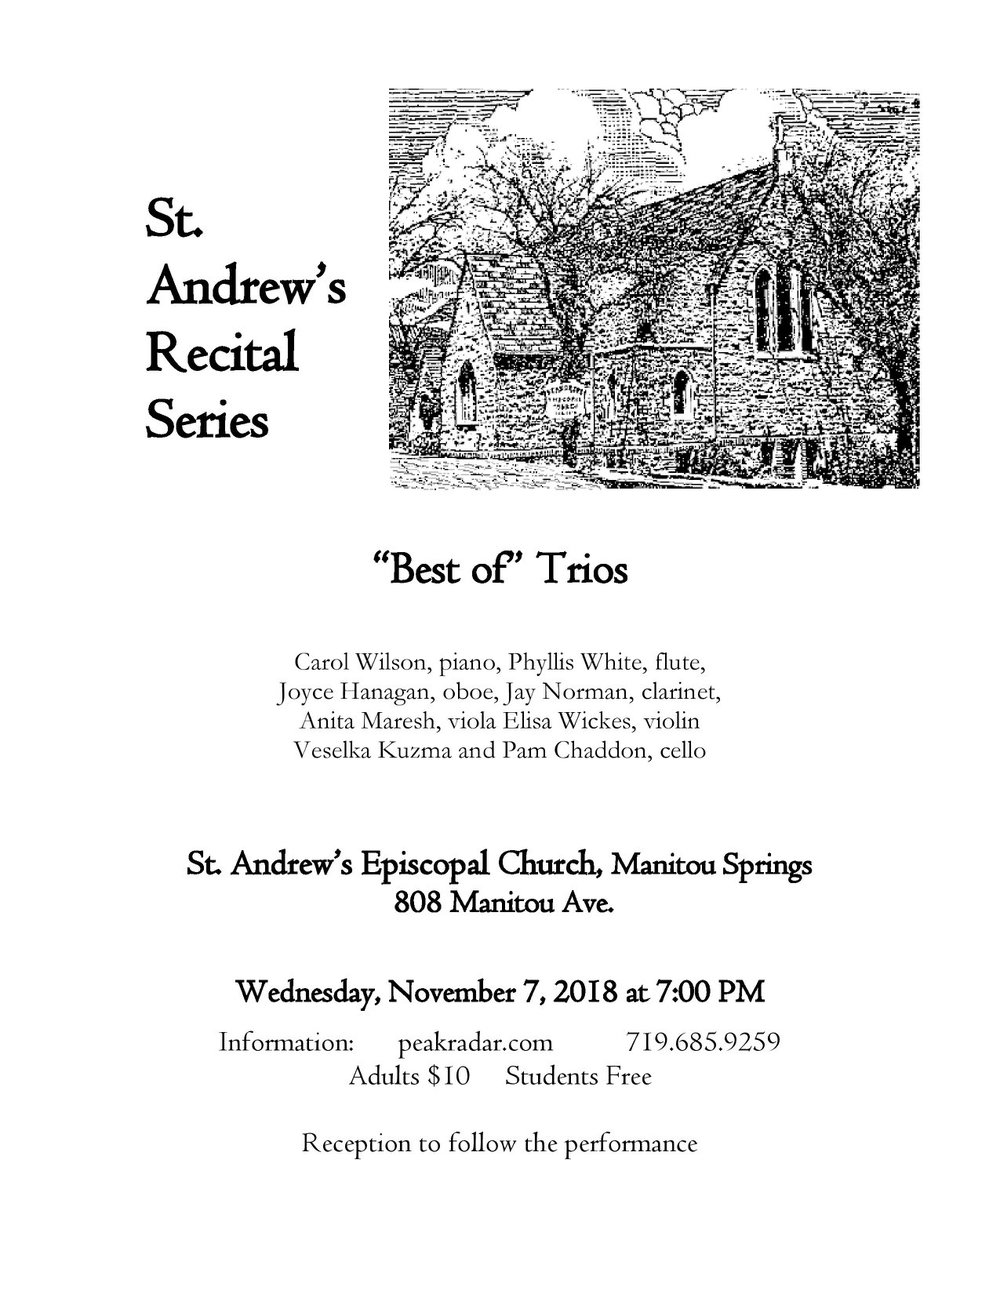 Trio – a group or set of three, in this case, a musical composition for three instruments.  There is different instrumentation for each trio on this program. Music from the Baroque, Classical, Romantic and 20th century periods are presented, all of which use the piano as the common instrumental voice and, so, are called piano trios. The remaining voices are drawn from woodwinds, flute, oboe, clarinet, and strings, violin, viola, cello.  The piano is the foundation for each of these compositions that includes trios that are less often performed by Loeillet, Kuhlau, Clara Schumann, Bruch and Gaubert.